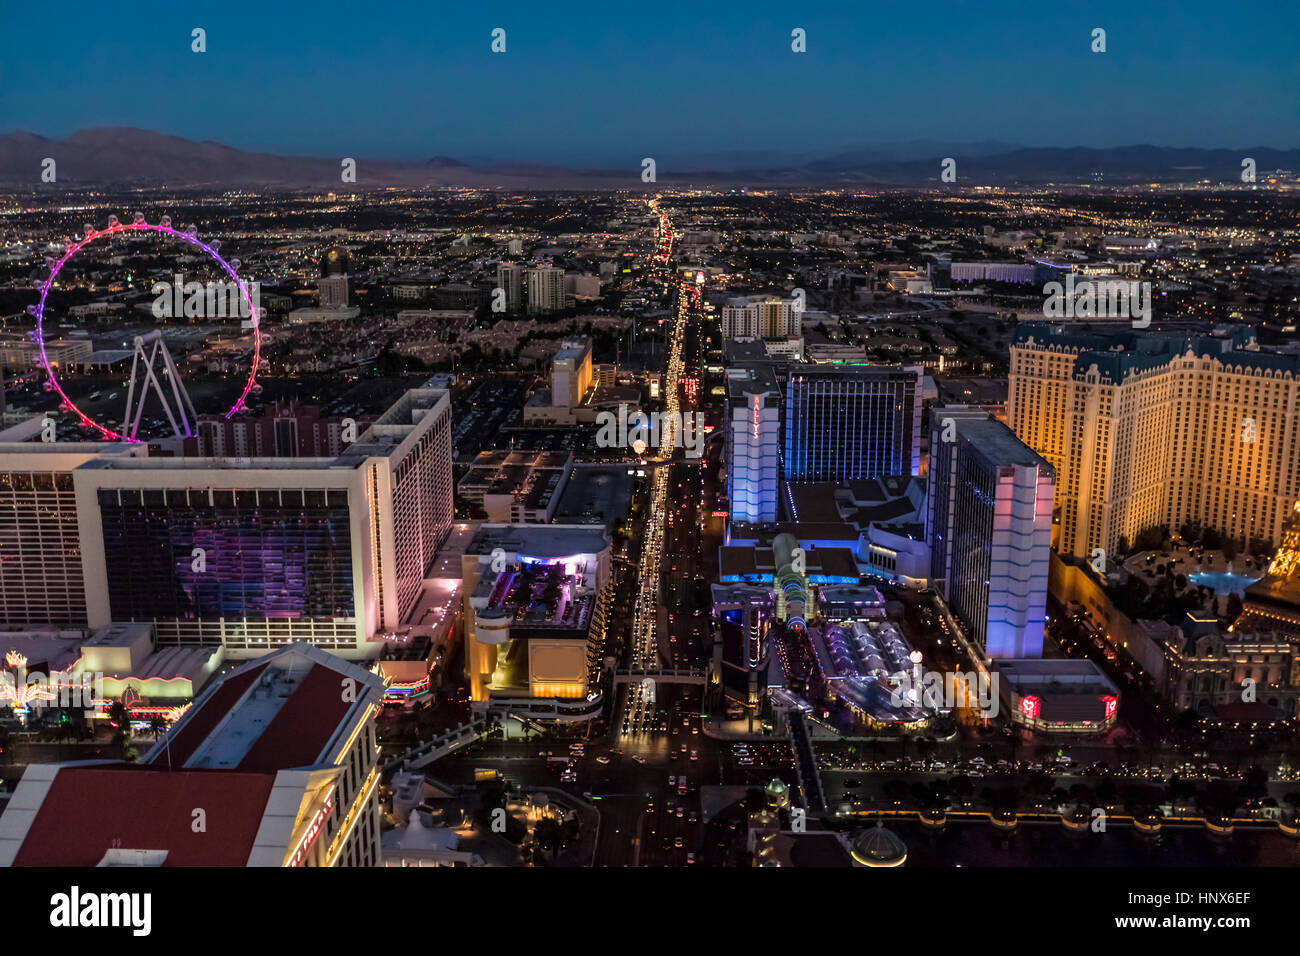 The Strip at night, Las Vegas, Nevada, USA - Stock Image